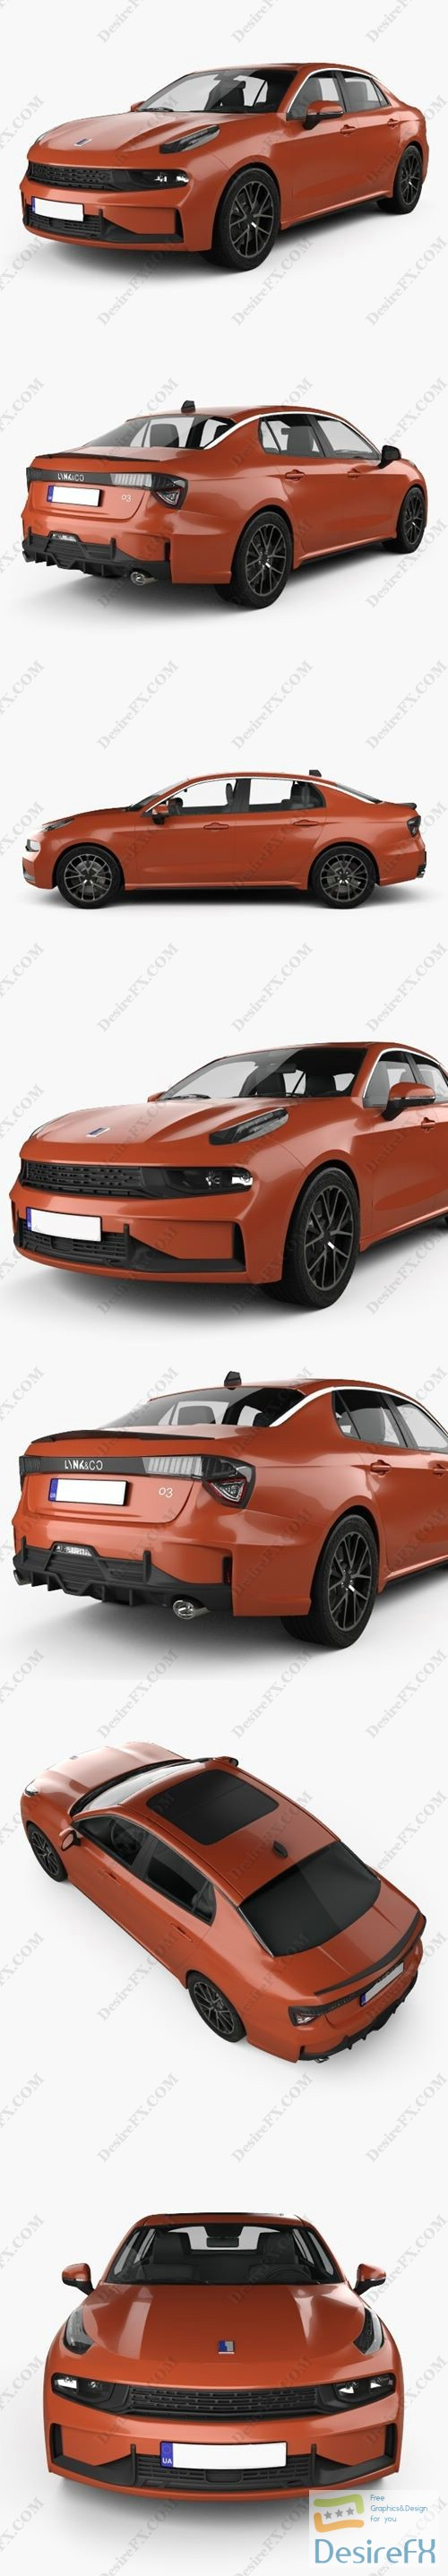 3d-models - Lynk & Co 03 sedan 2018 3D Model